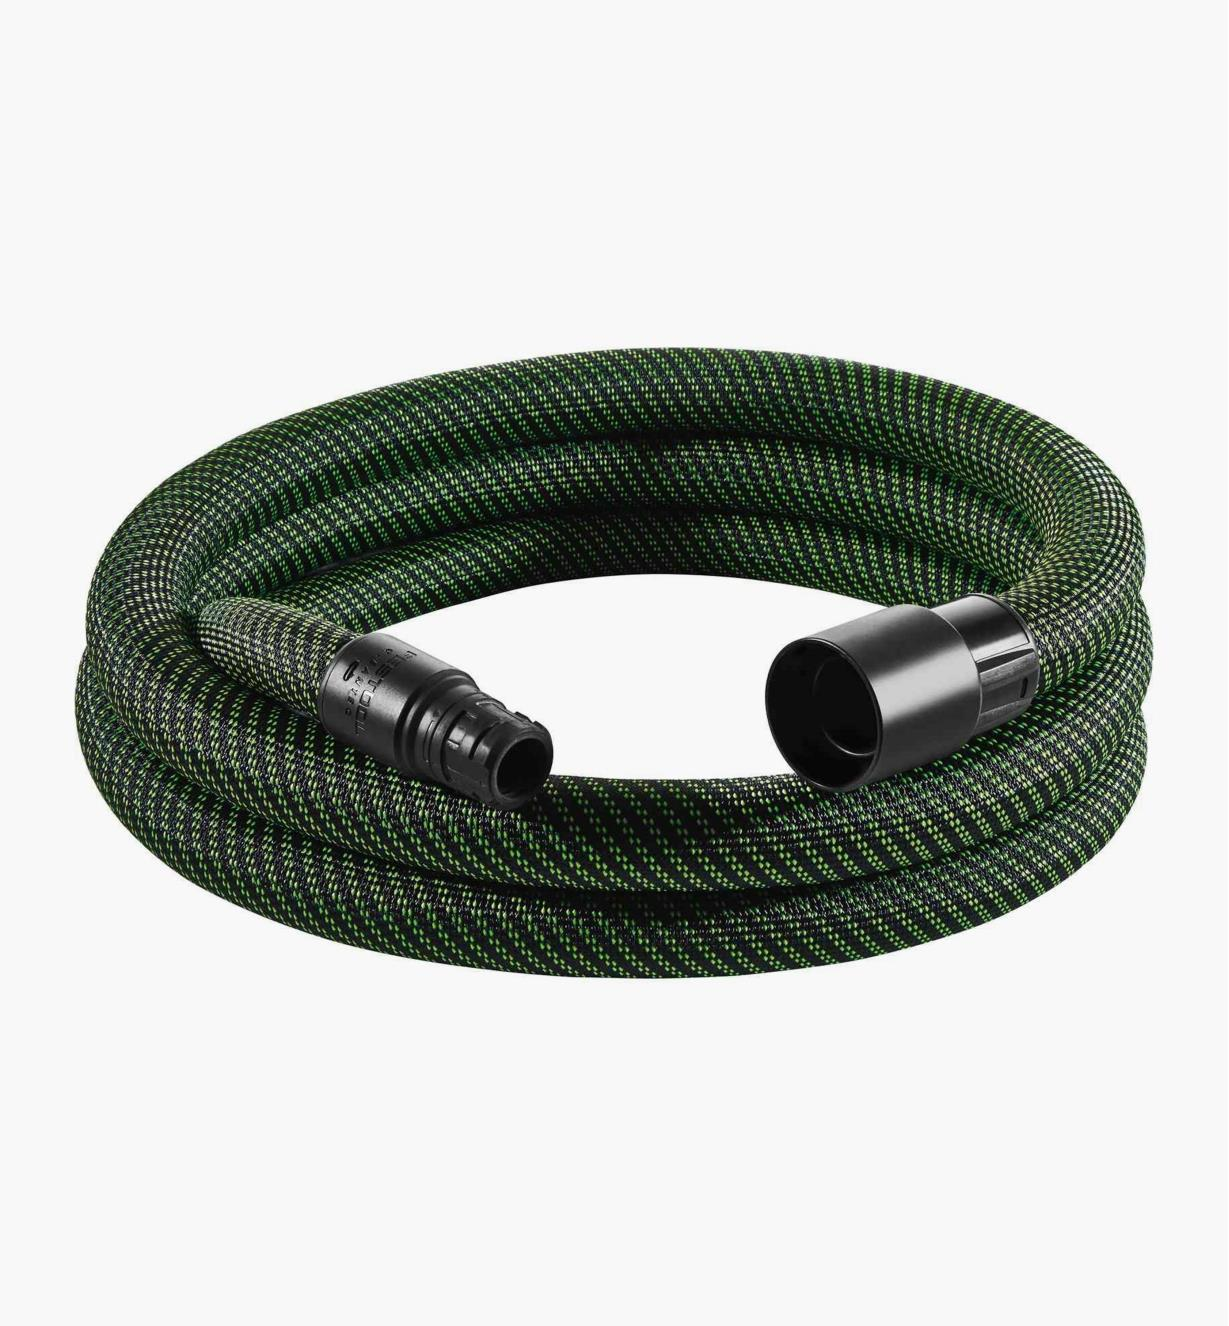 "ZA500677 - 27 mm x 3.5 m (1 1/16"" x 11'6"") Anti-static Hose"